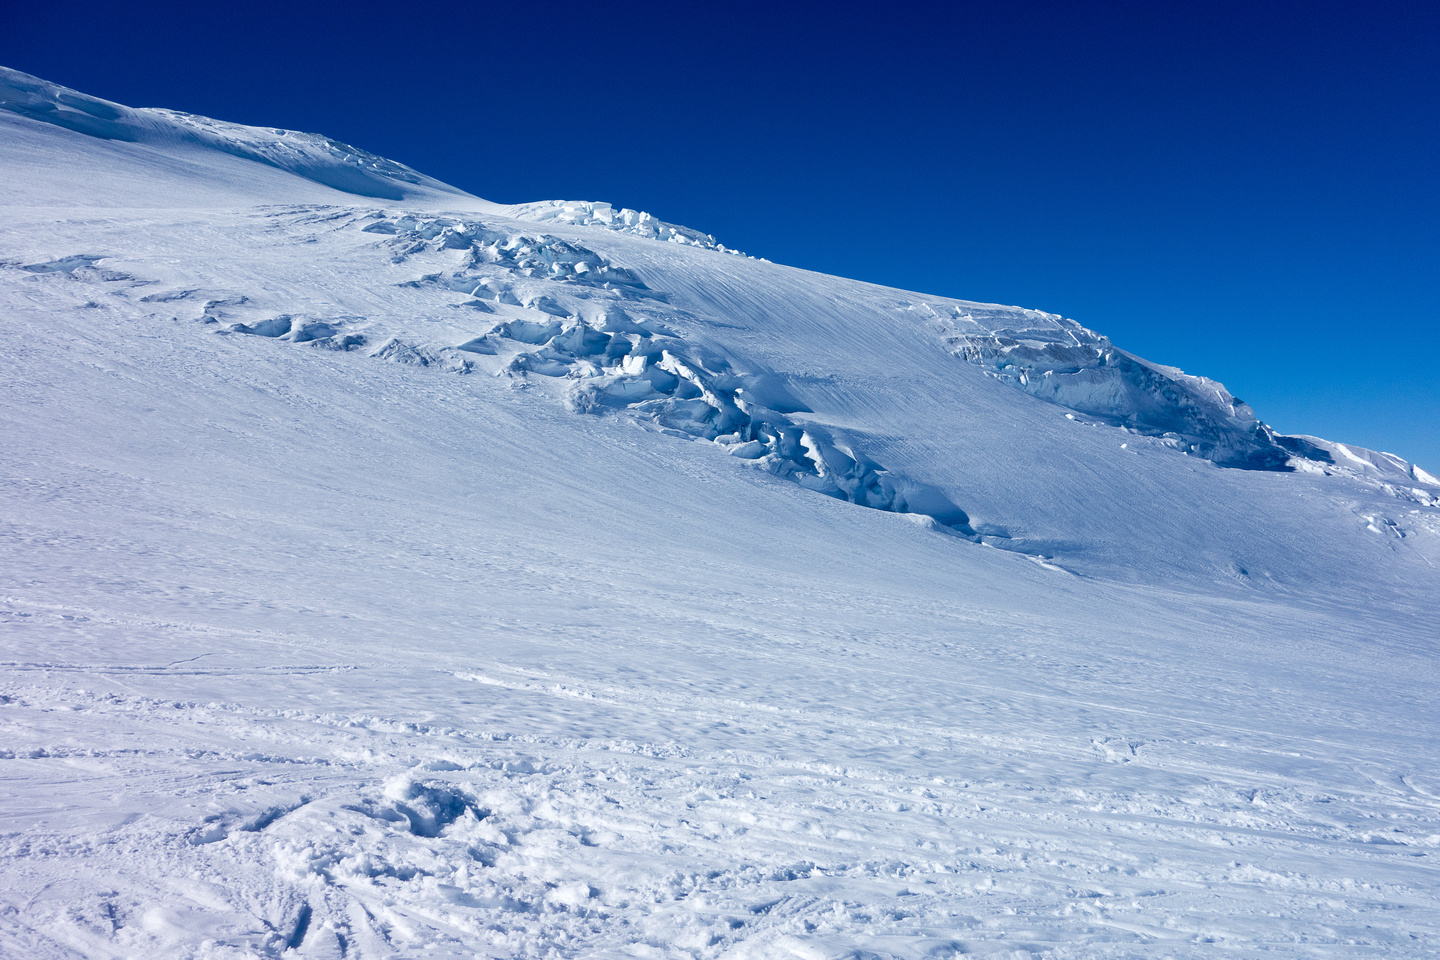 See what I mean? These are the crevasses you definitely want to avoid!